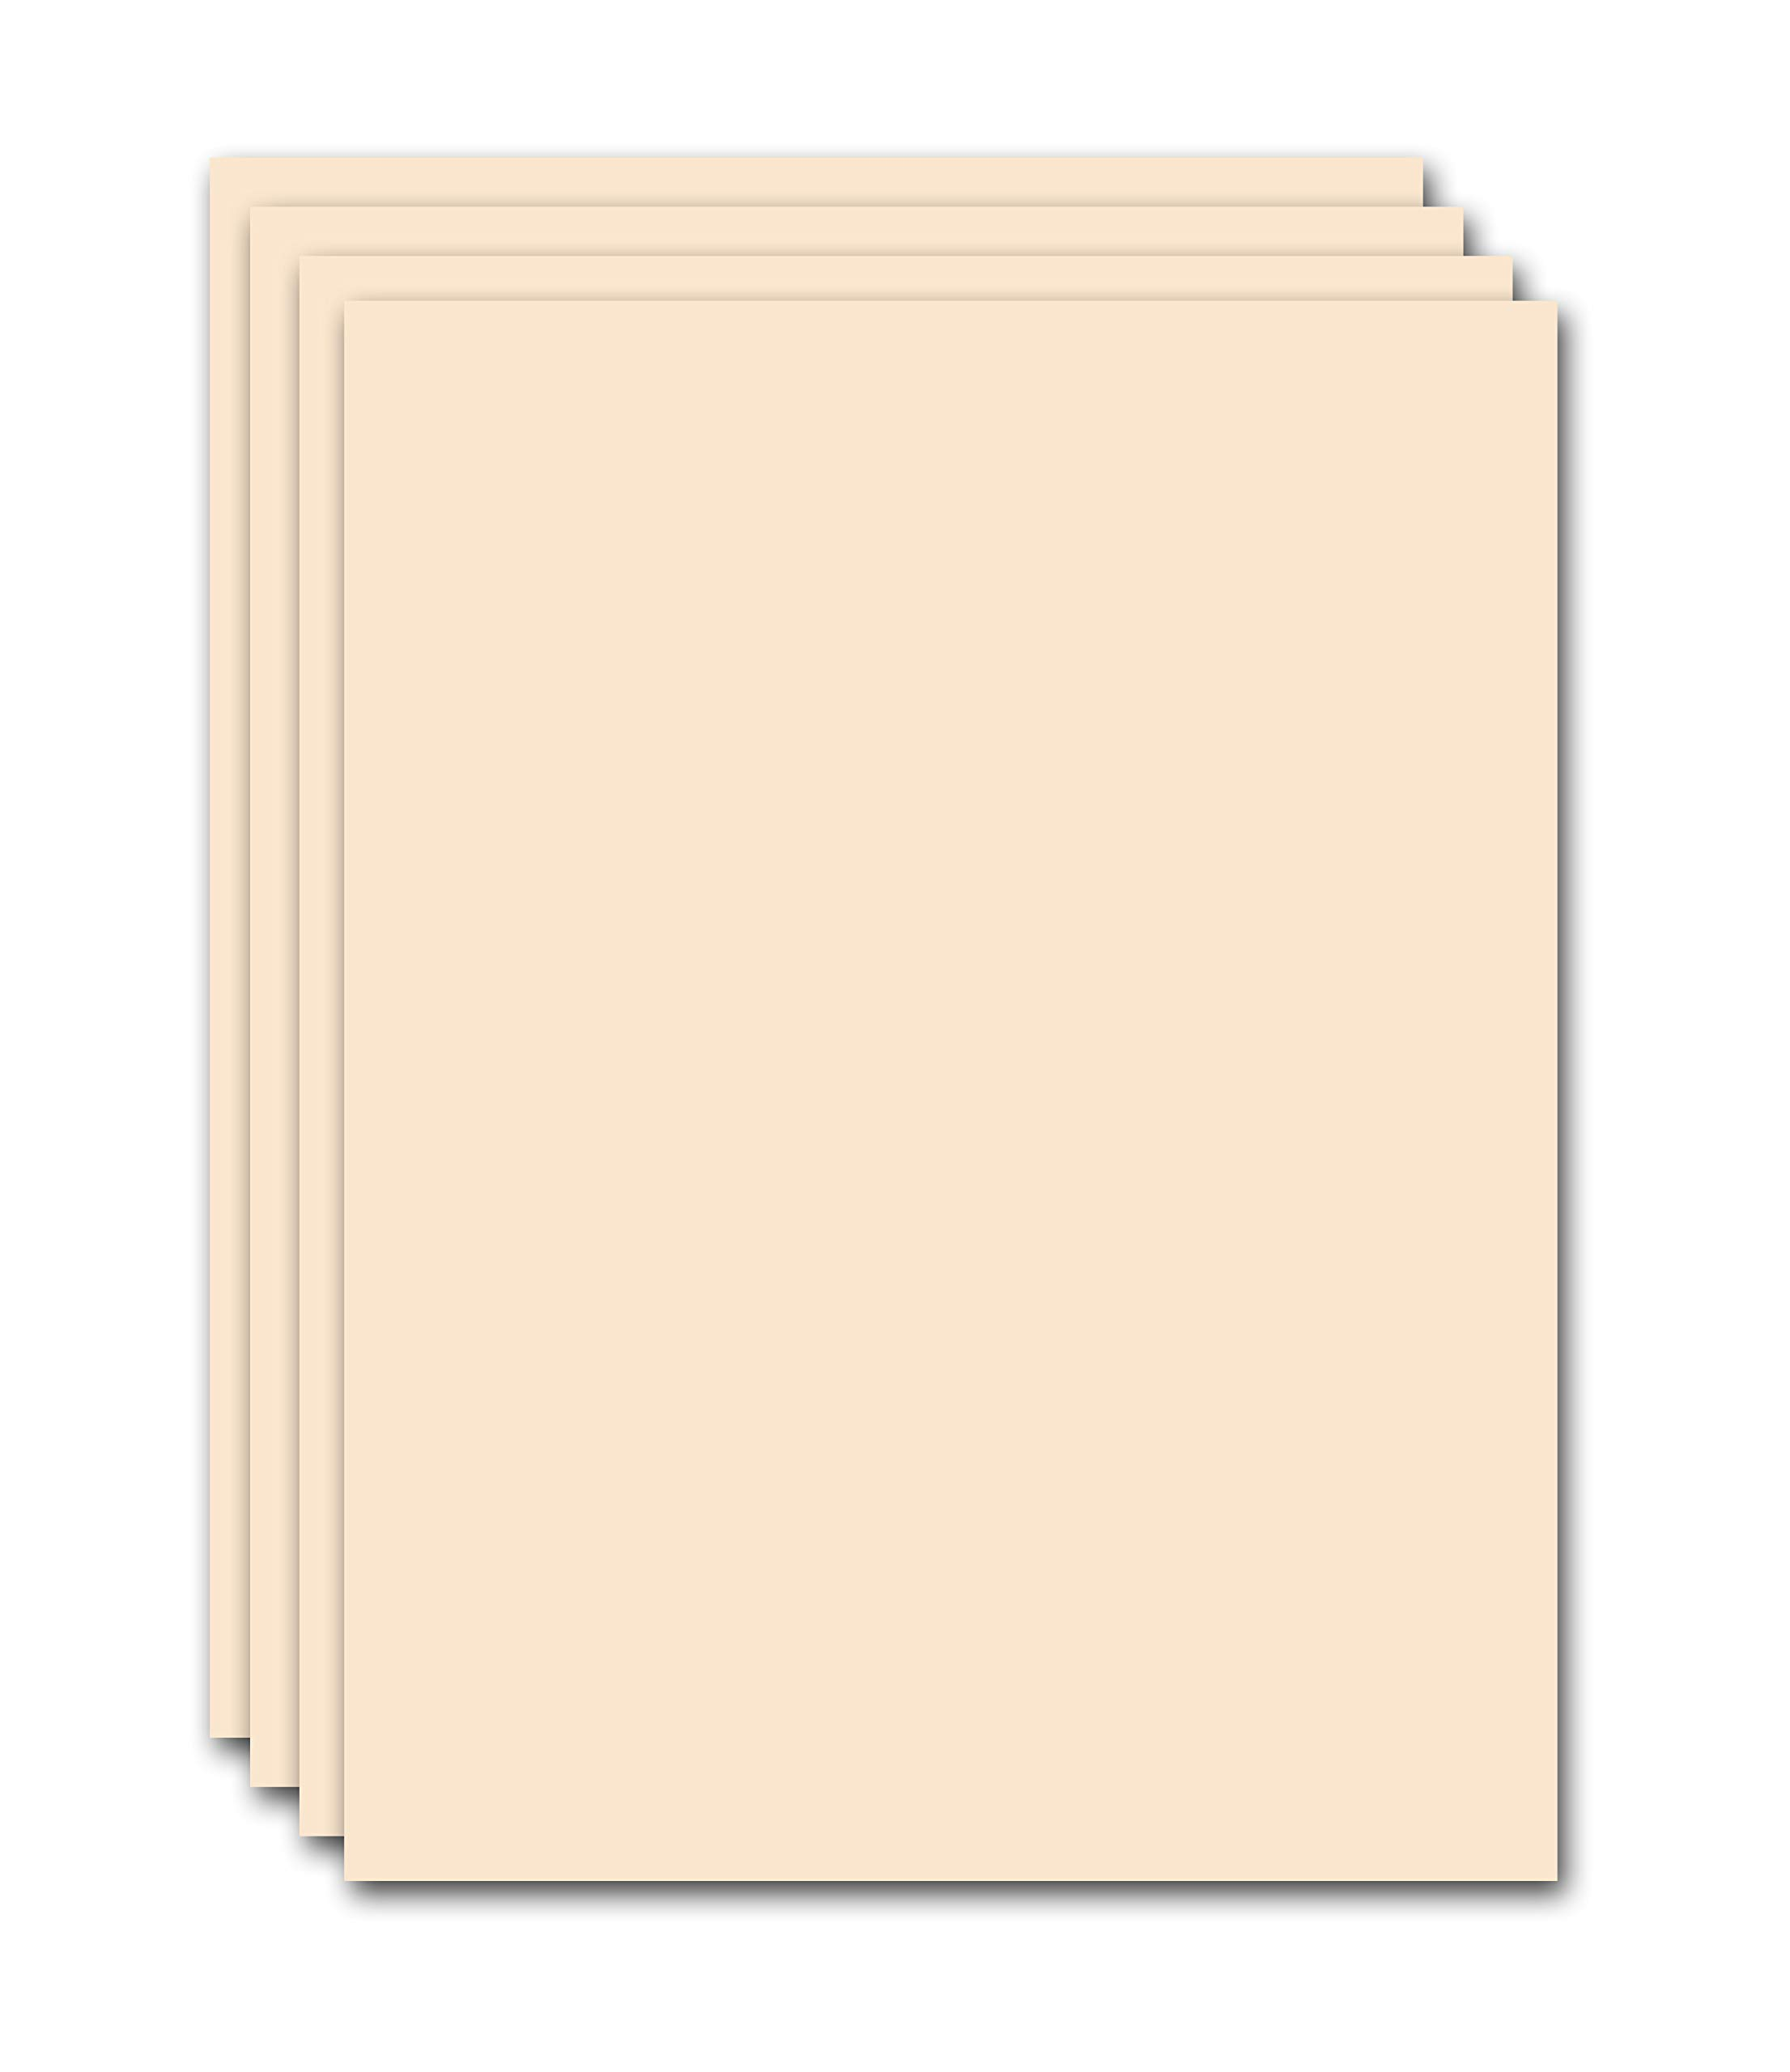 Premium Natural Card Stock Double Thick Heavyweight Paper - 130# Cover (350 gsm) - 8.5'' x 11'' - Pack of 200 Sheets - Cover Smooth Finish